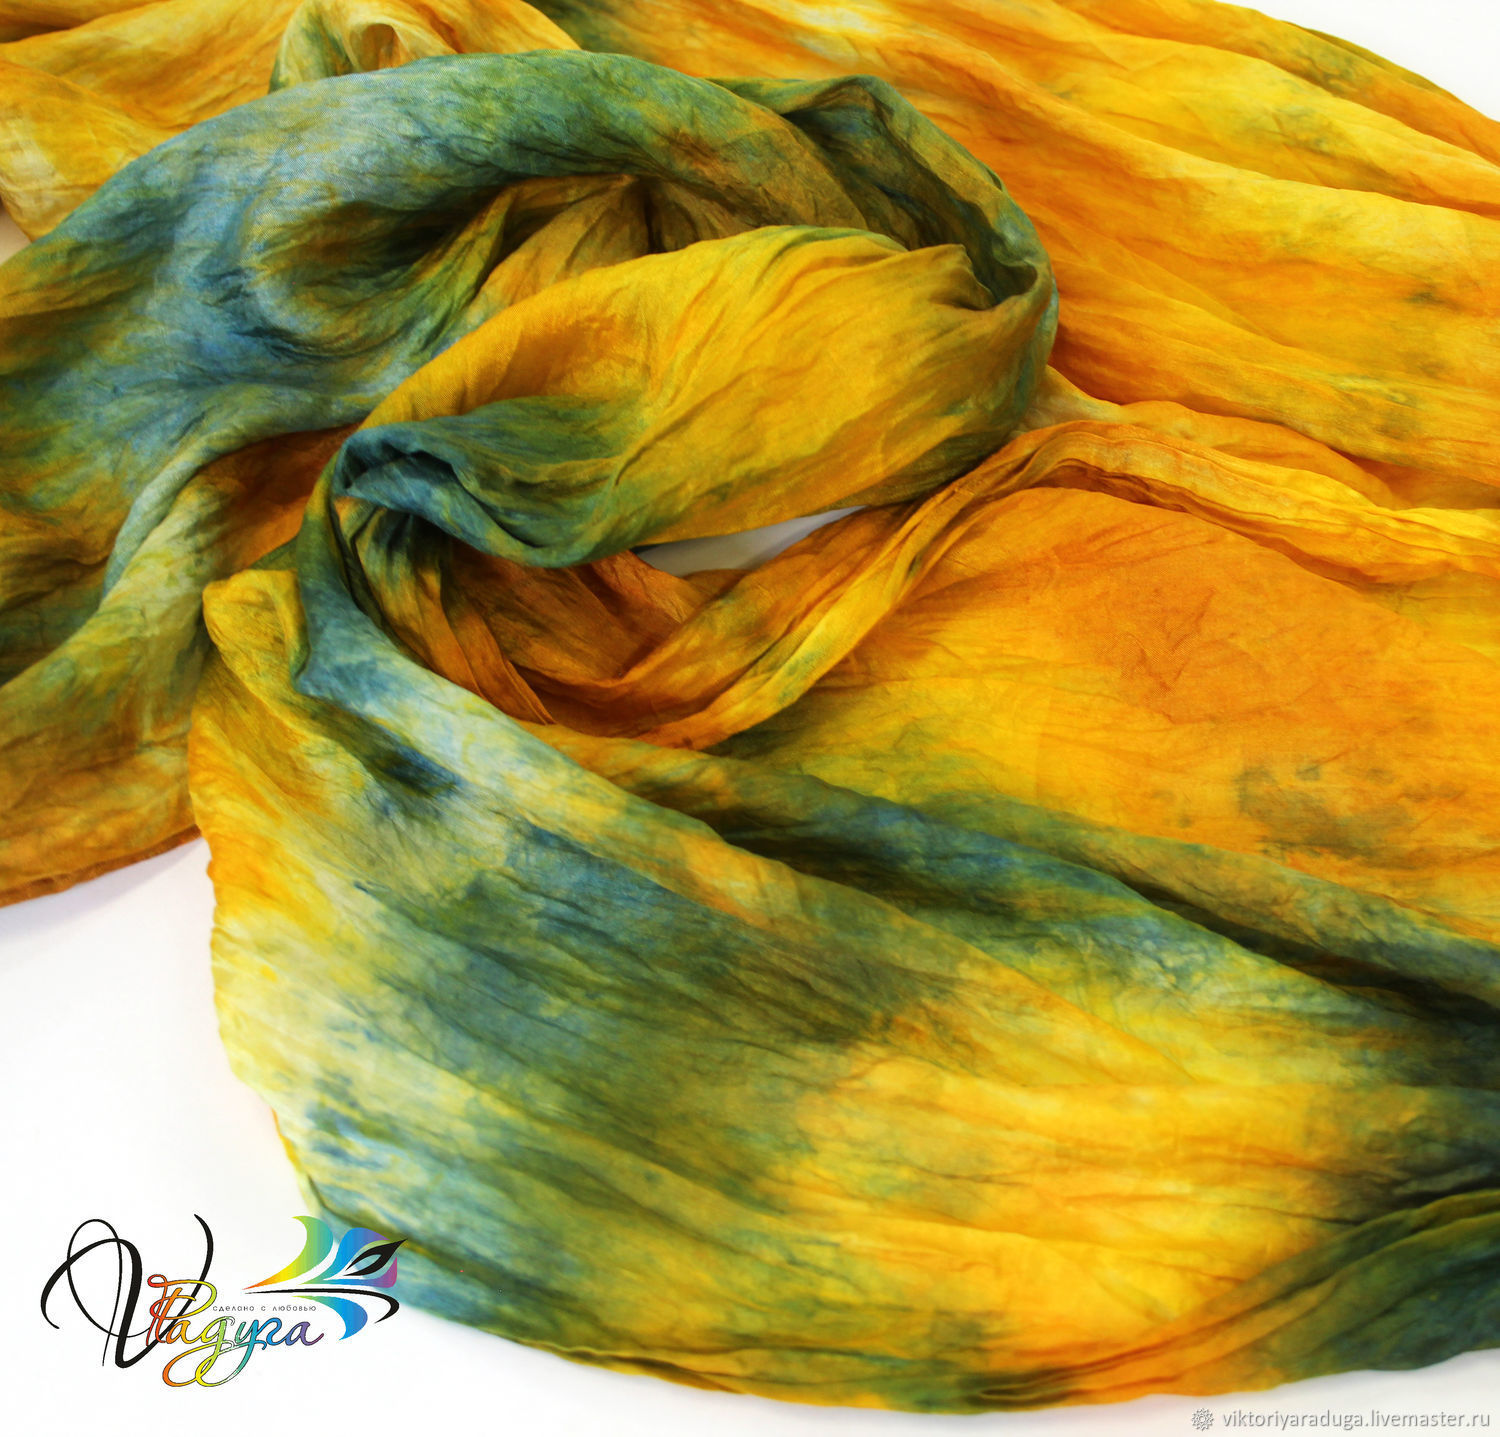 Studio rainbow Victoria, art work, original painting, handmade, designer stole, a gift to buy, to buy a bright scarf, a bright accessory, buy batik stole